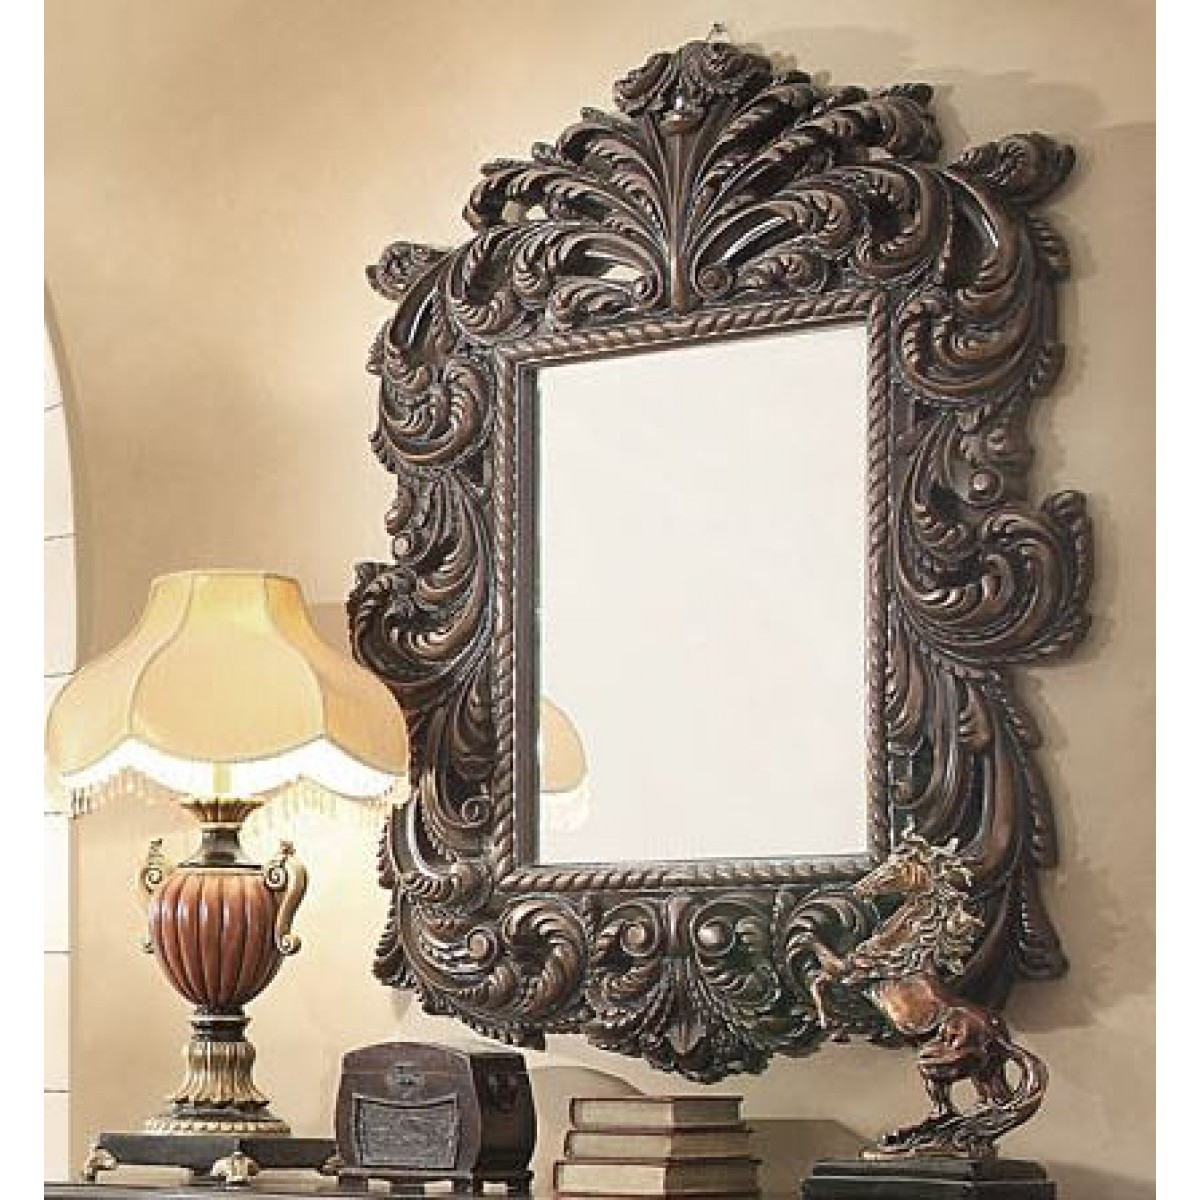 Hd Homey Design Traditional Wall Mirror Mirrors Home Decor Within Newest Traditional Wall Mirrors (View 3 of 20)